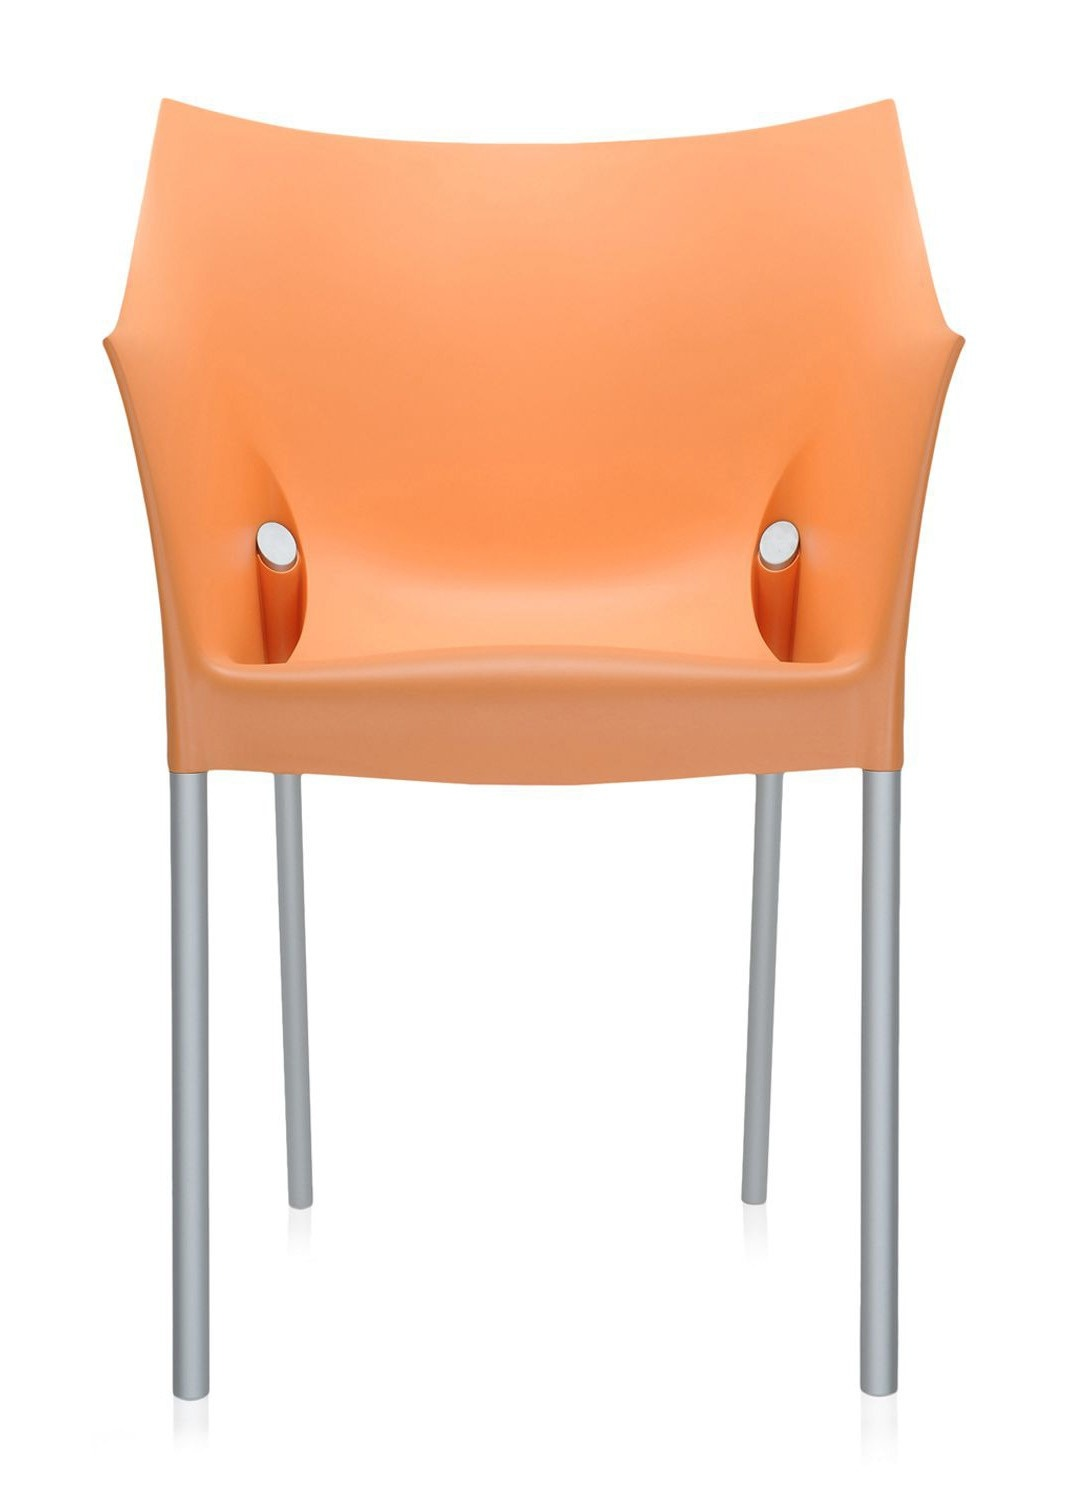 Kartell Dr No Chair (Priced Each, Sold in Sets of 2)